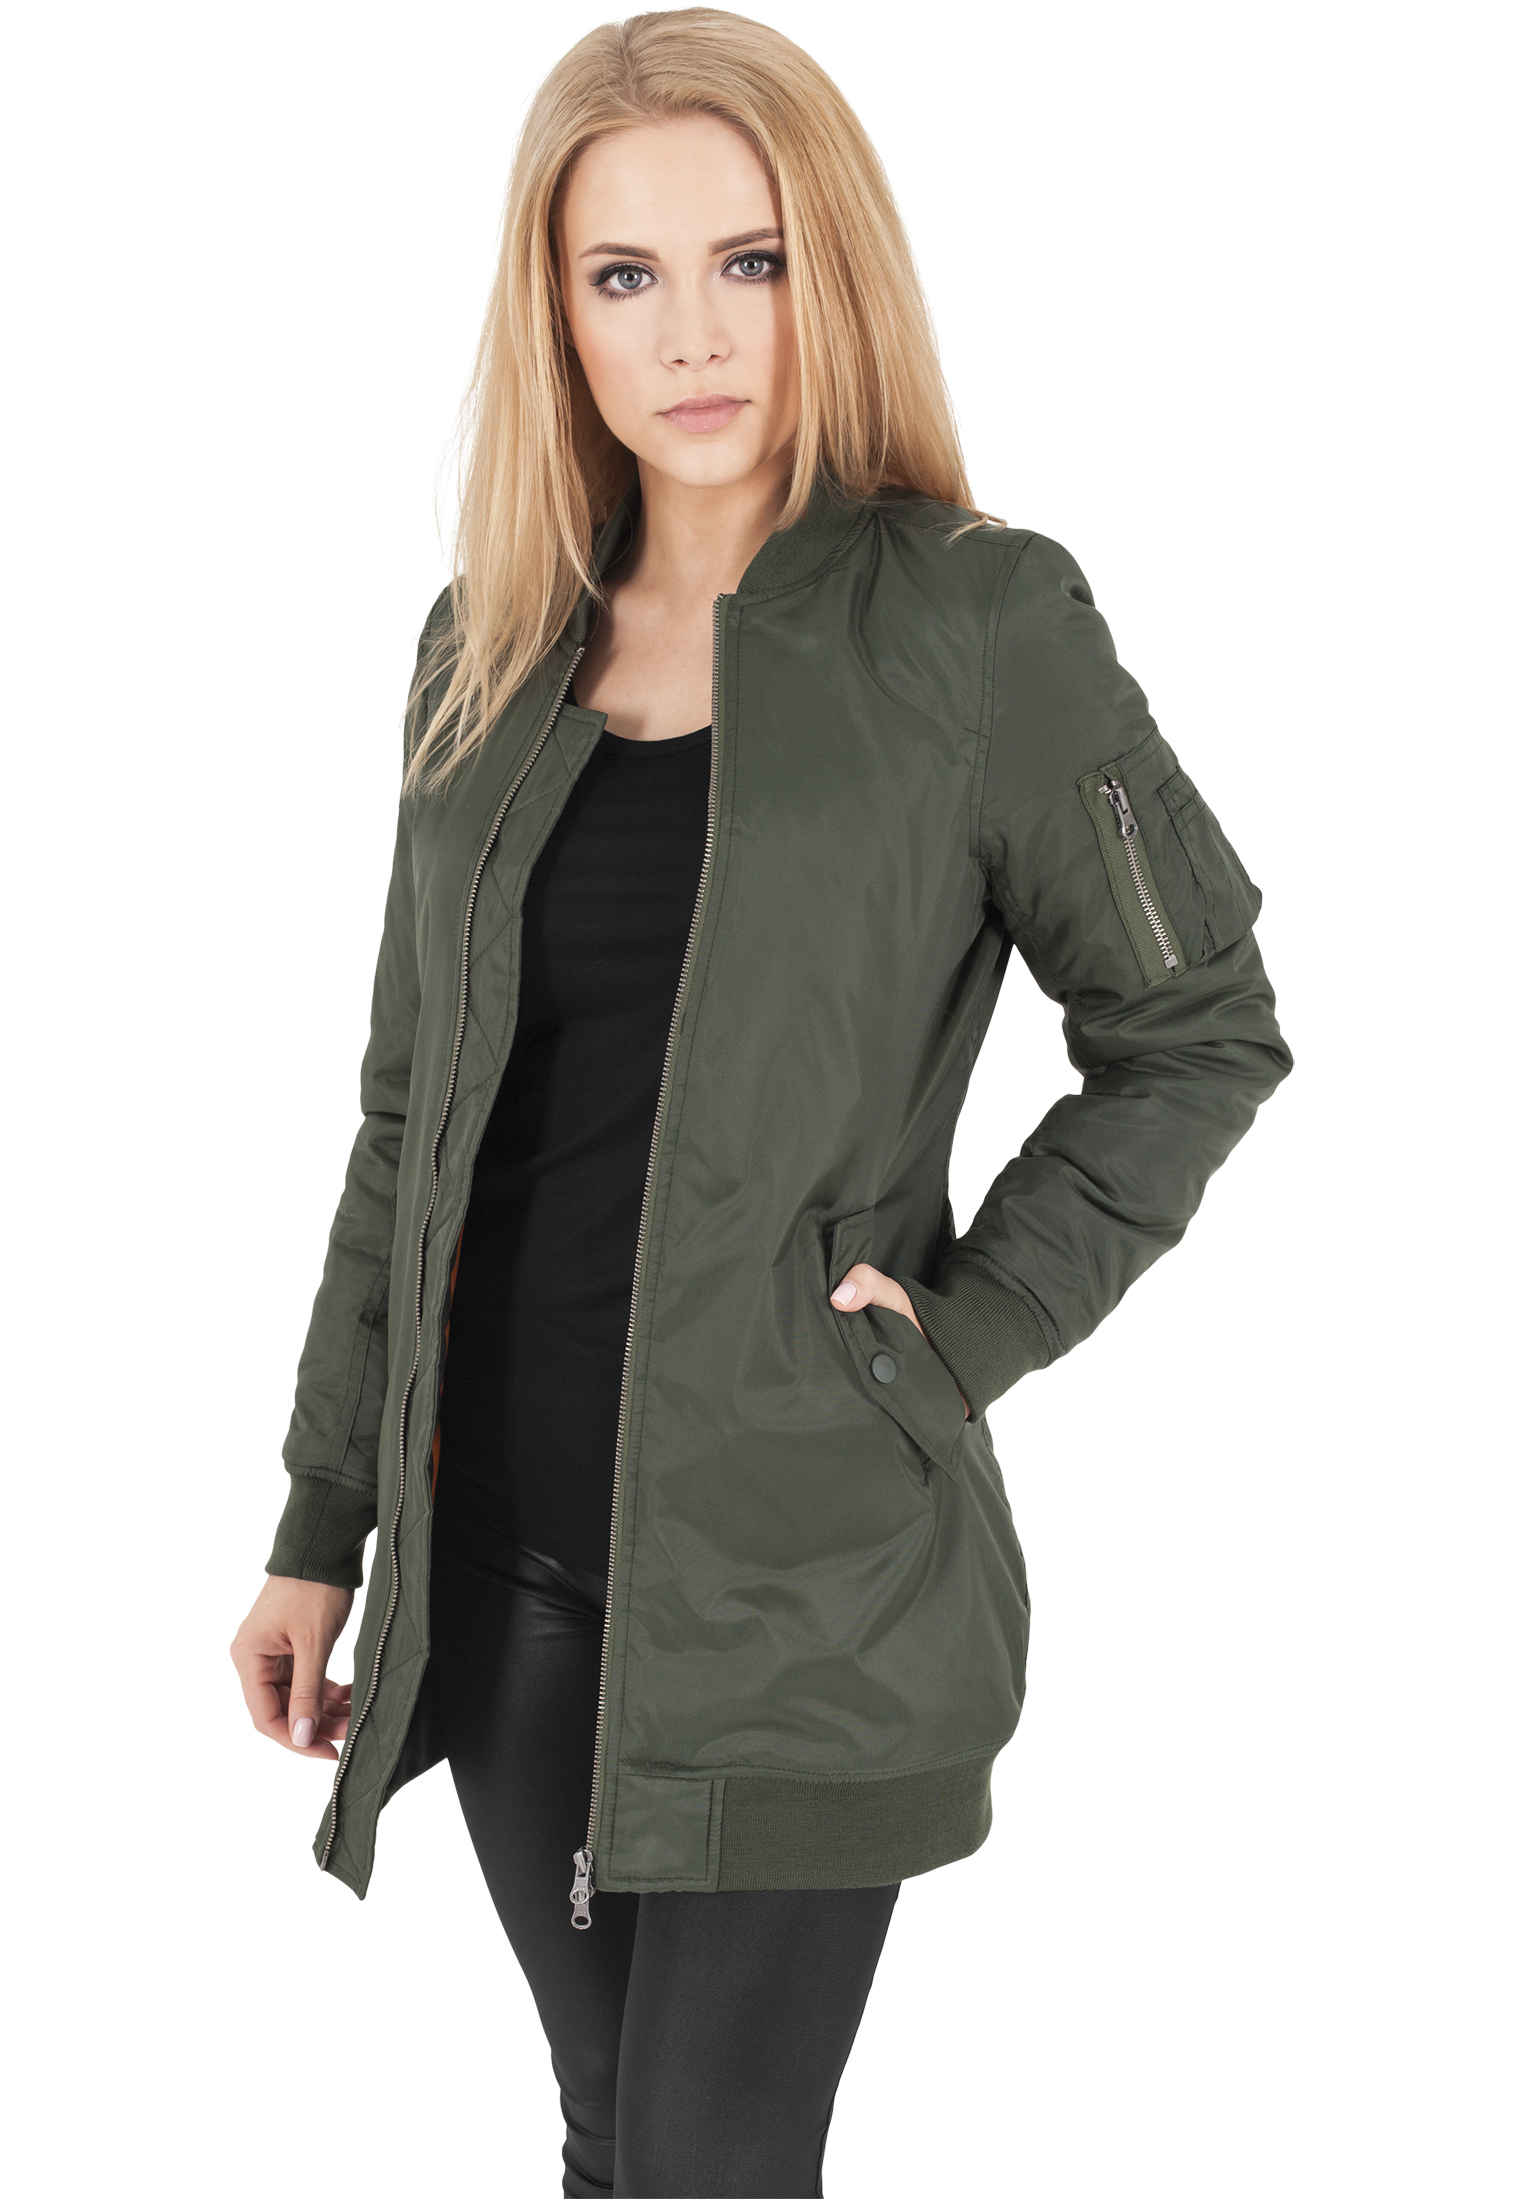 Long Bomber Jacket Features: Long Sleeve, Full-zip front closure, Ribbed American Bazi G-Style USA Women's Destroyed Denim Jacket. by American Bazi. $ - $ $ 39 $ 45 out of 5 stars Product Features Layer up in style with this Destroyed Long Denim Bomber Jacket.